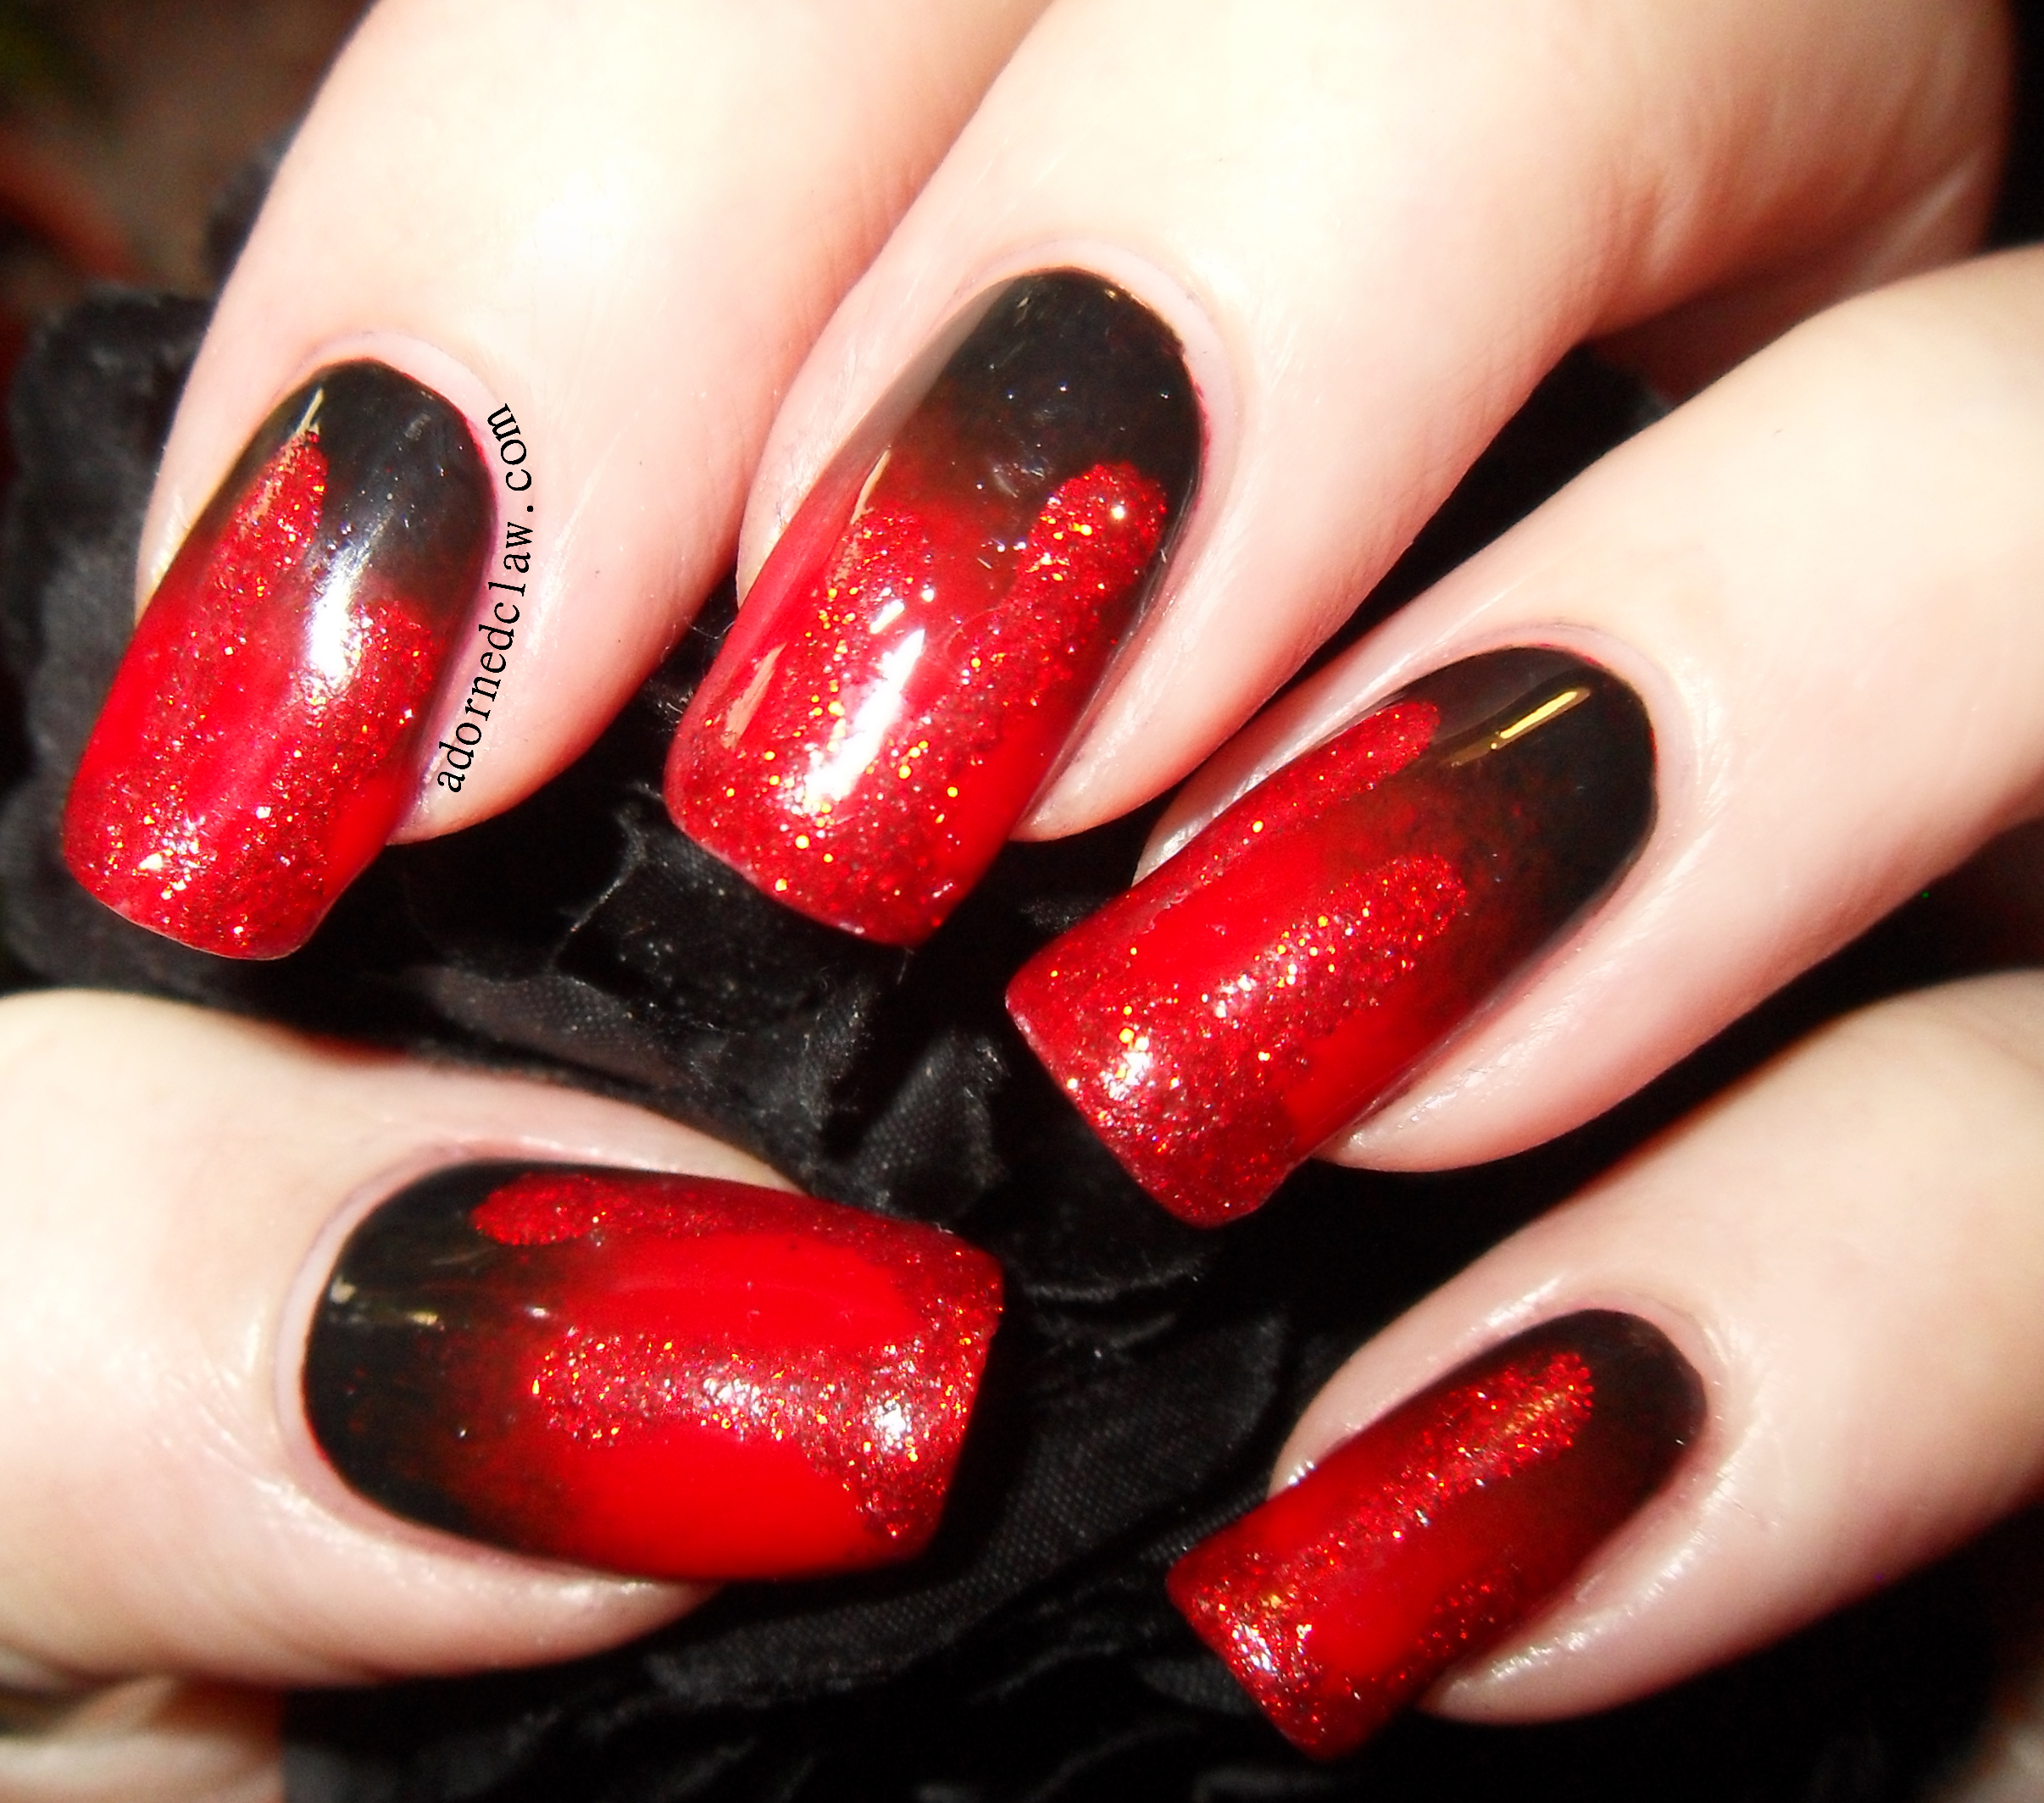 Glitter For Blood! | The Adorned Claw